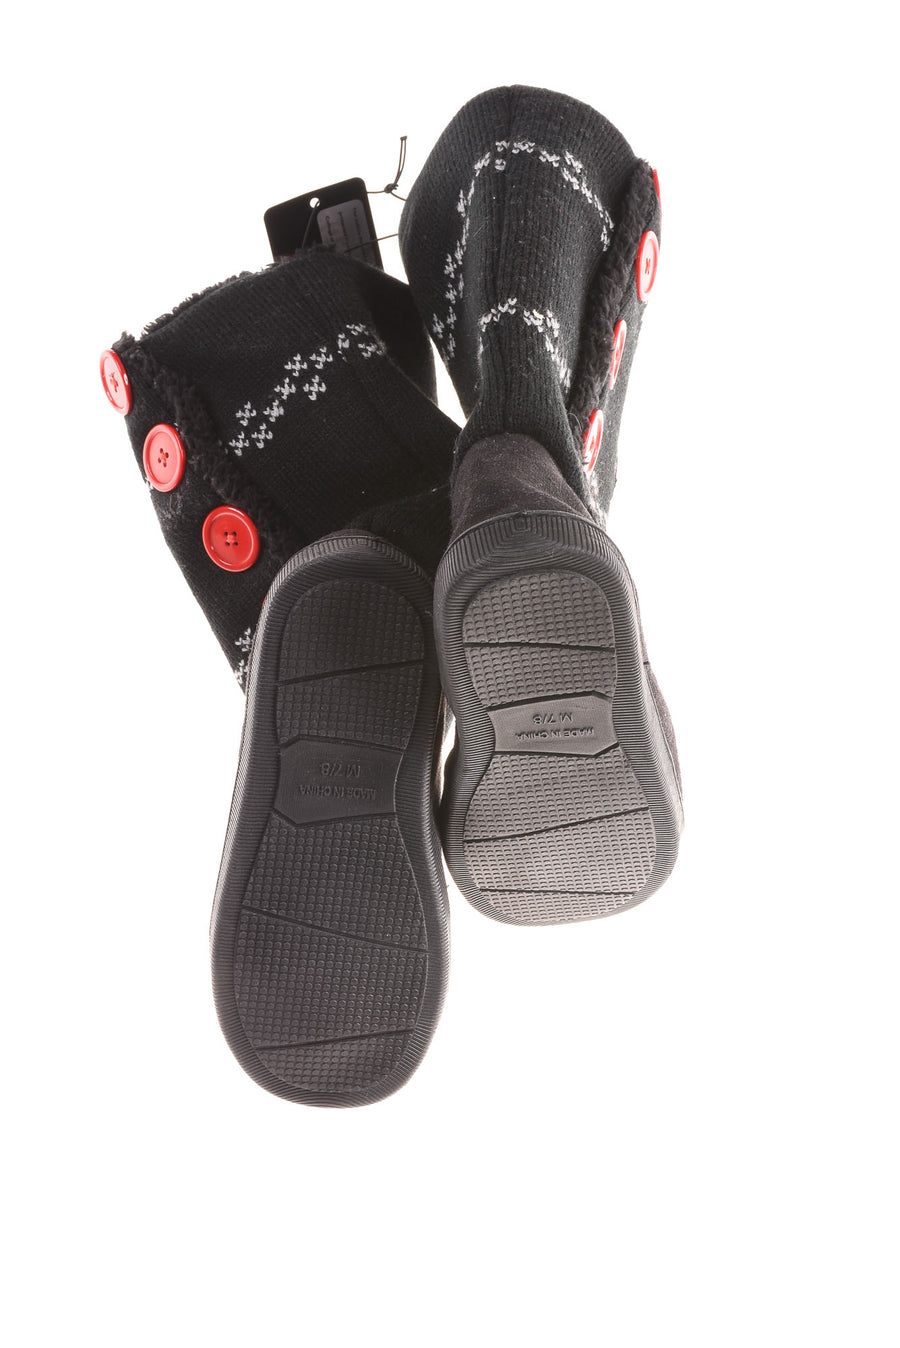 NEW Ohio State Women's Boots 7/8 Black